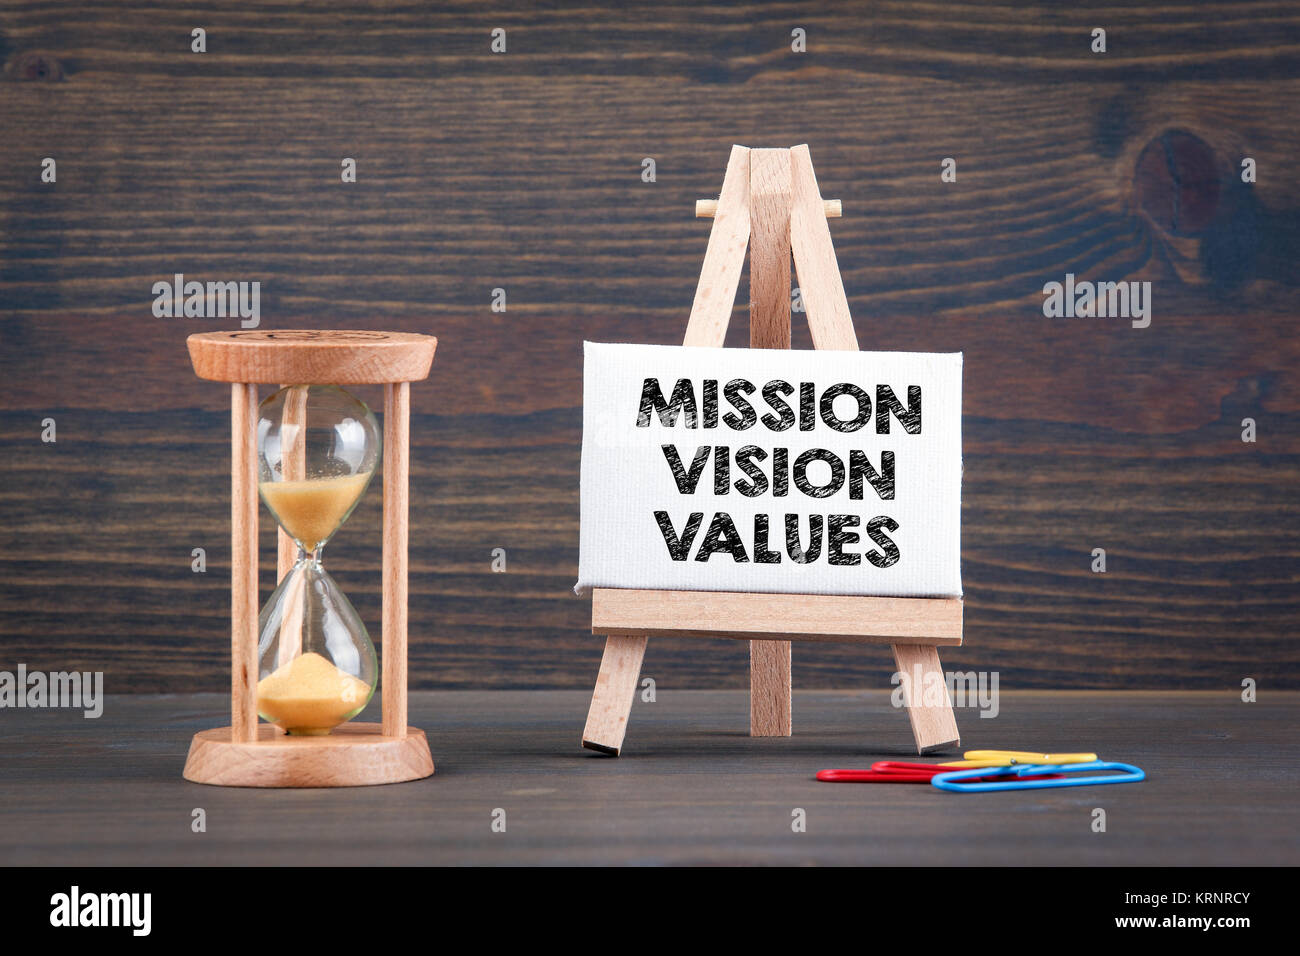 Mission, Vision and Values. Sandglass, hourglass or egg timer on wooden table  - Stock Image